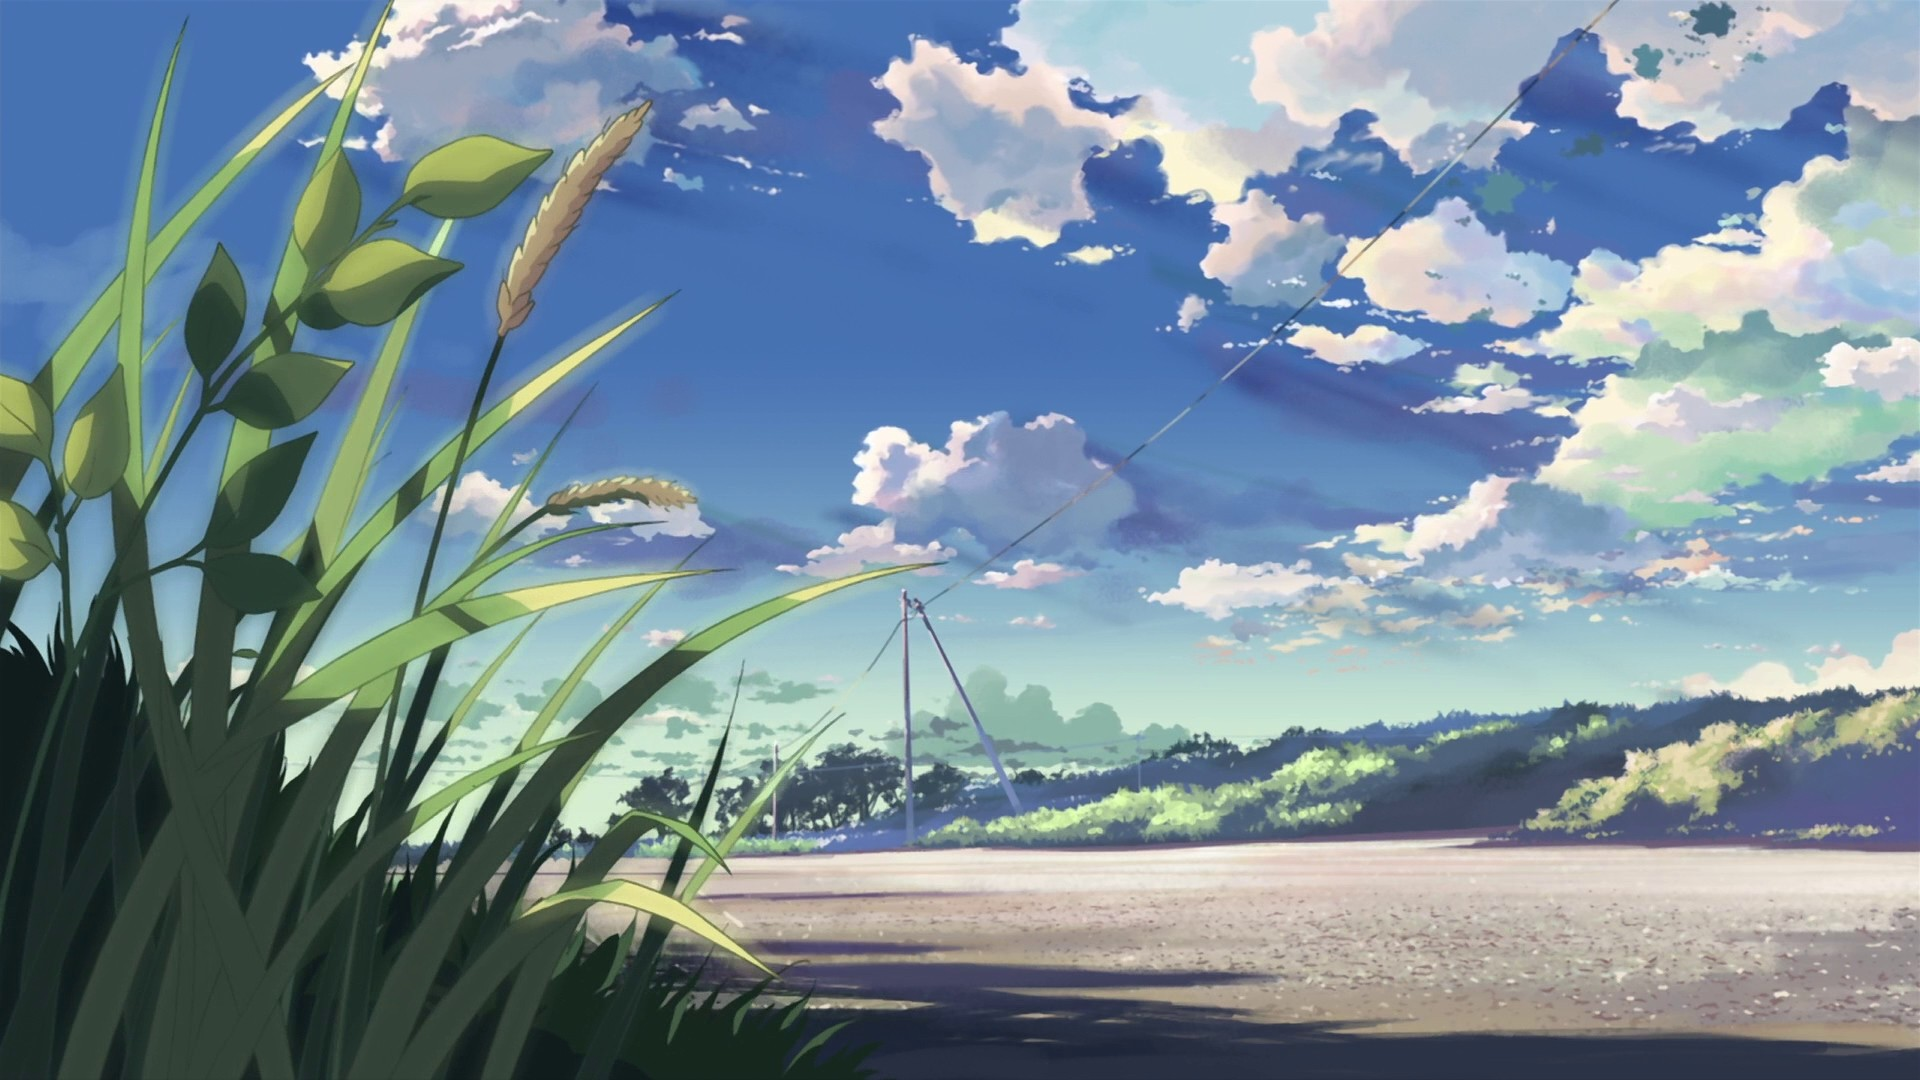 You can also upload and share your favorite anime iphone wallpapers 19+  Scenery Iphone